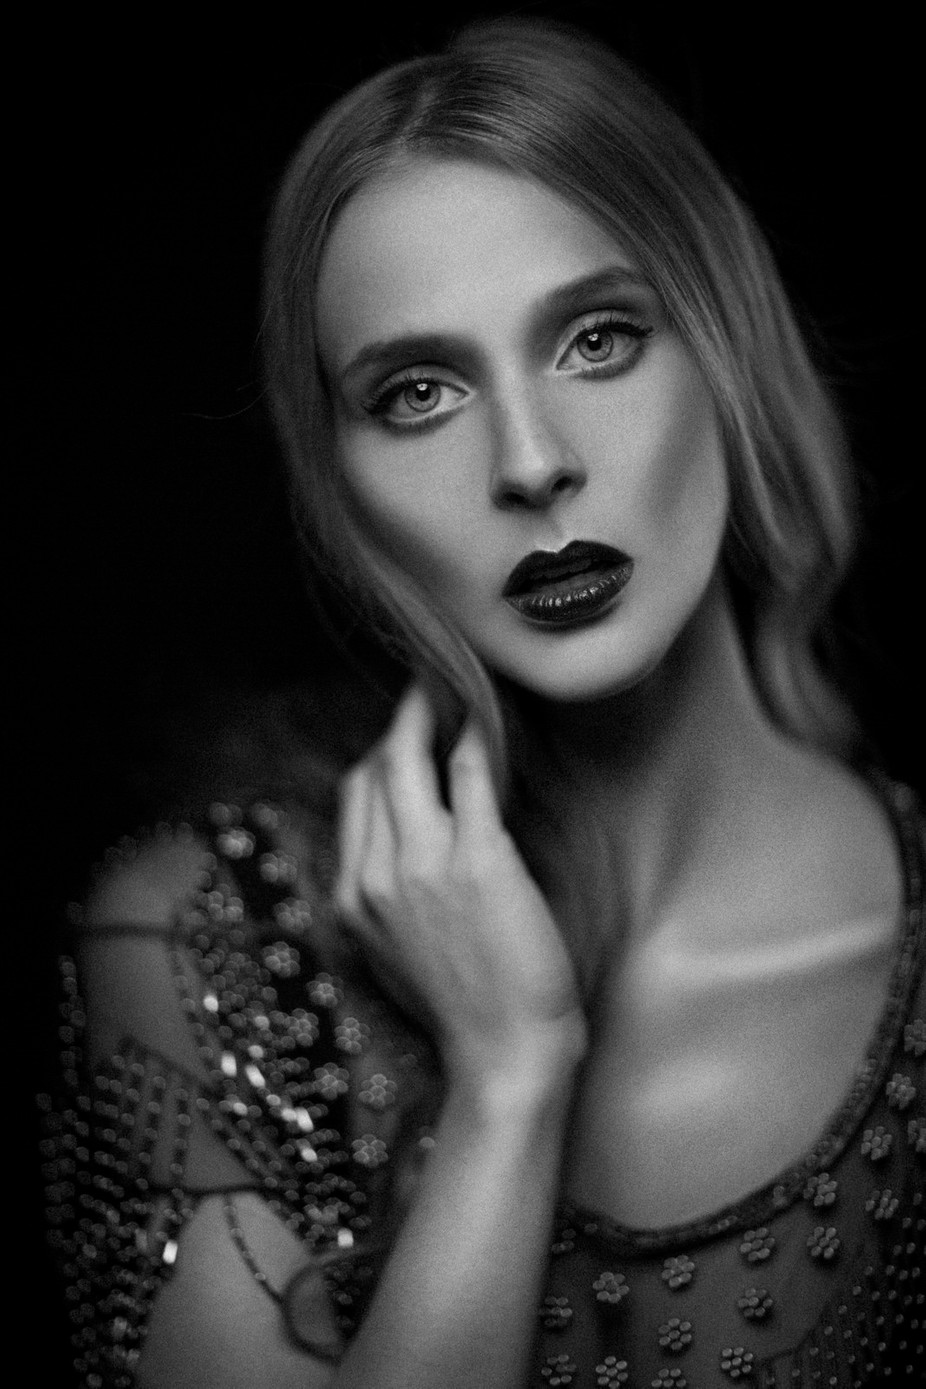 Elaine   by PaulHenryStudios - A Black And White World Photo Contest